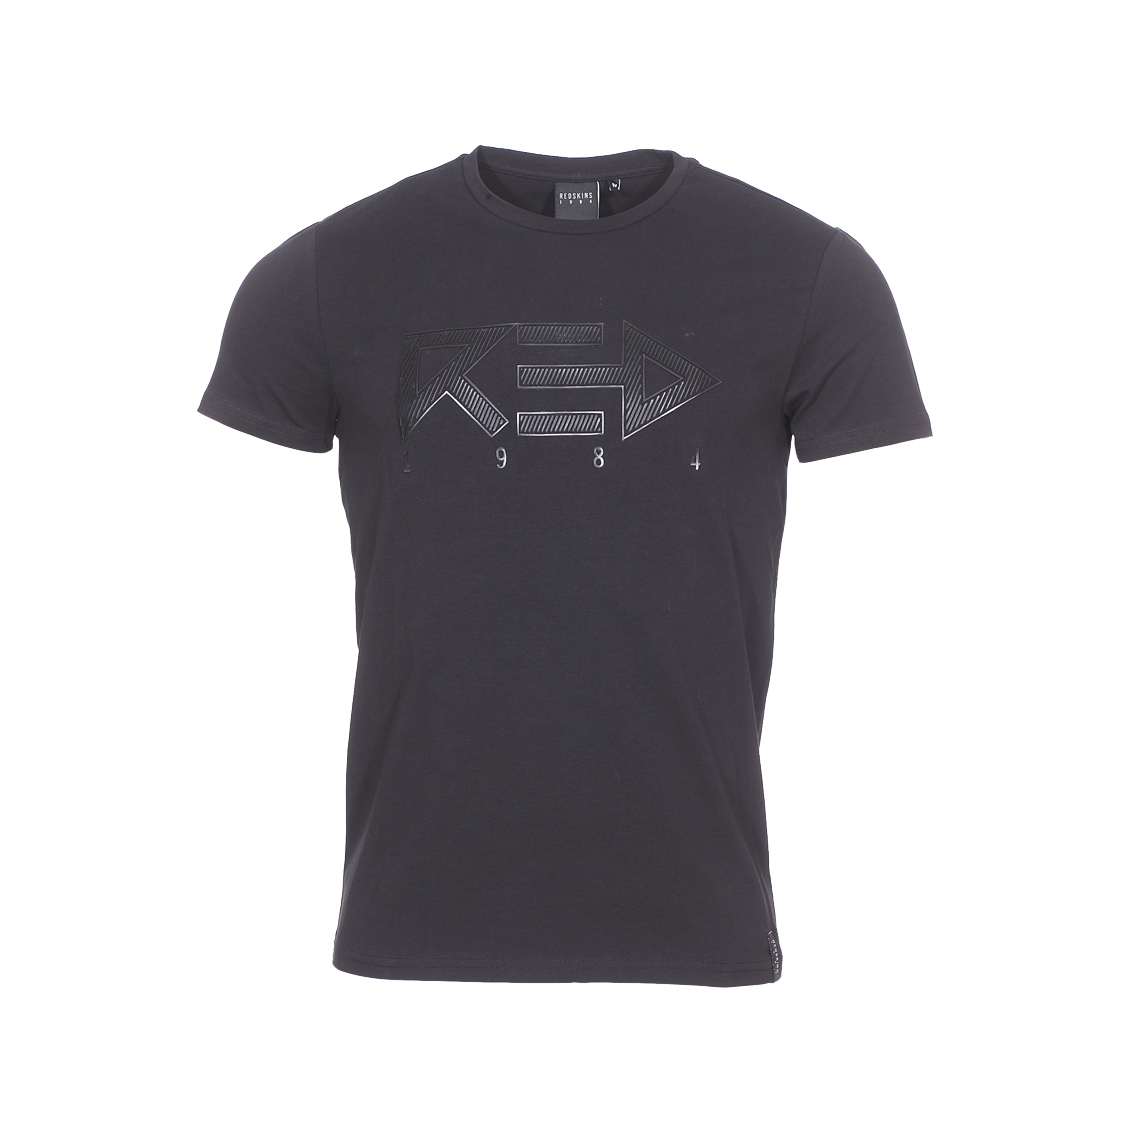 Tee-shirt col rond  blocker en coton stretch noir floqué